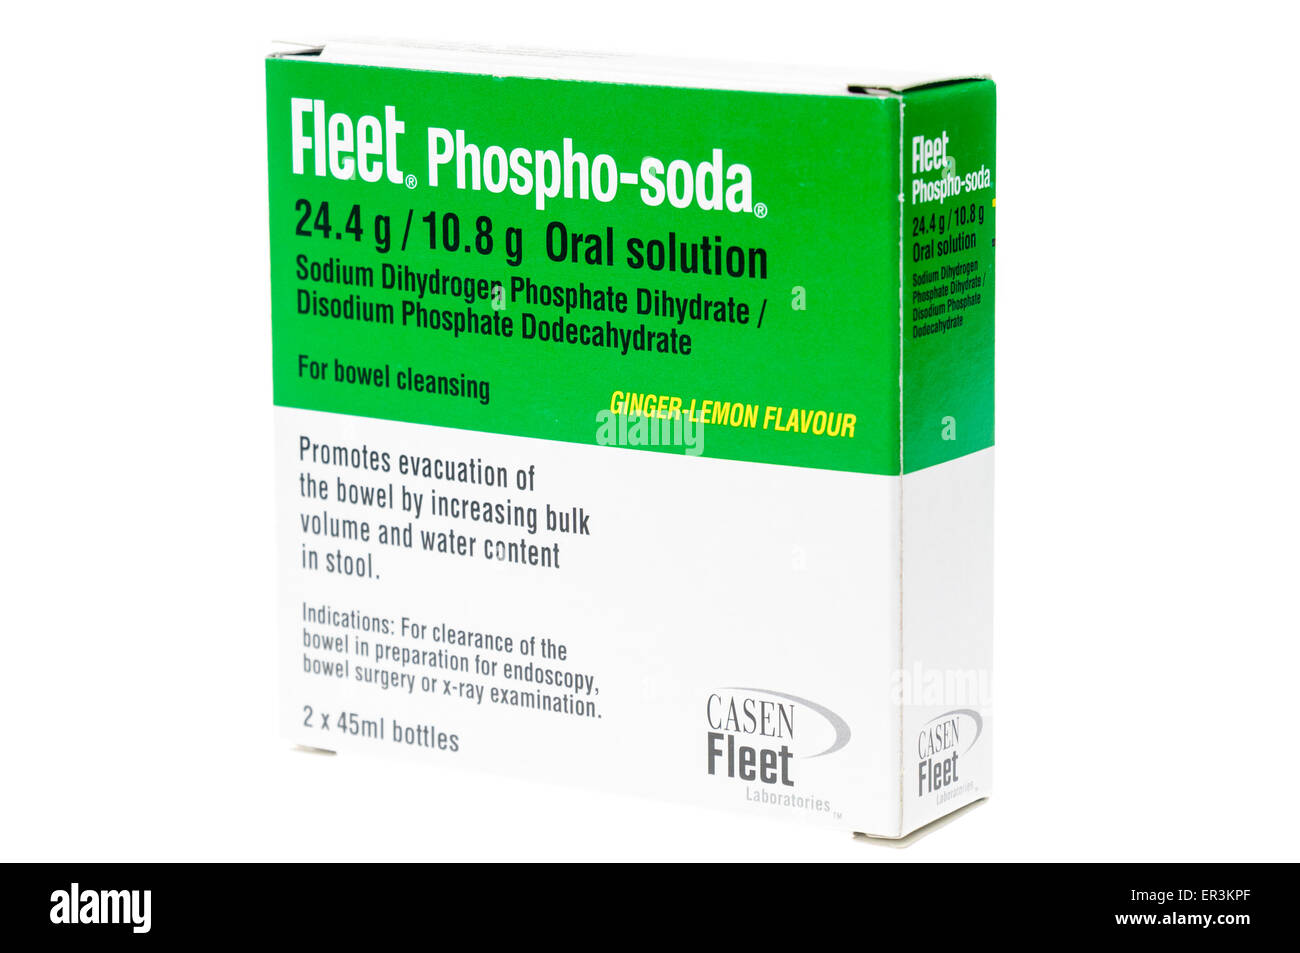 Fleet phospho-soda bowl preparation oral solution, used to clear bowels prior to procedures such as colonoscopies. - Stock Image